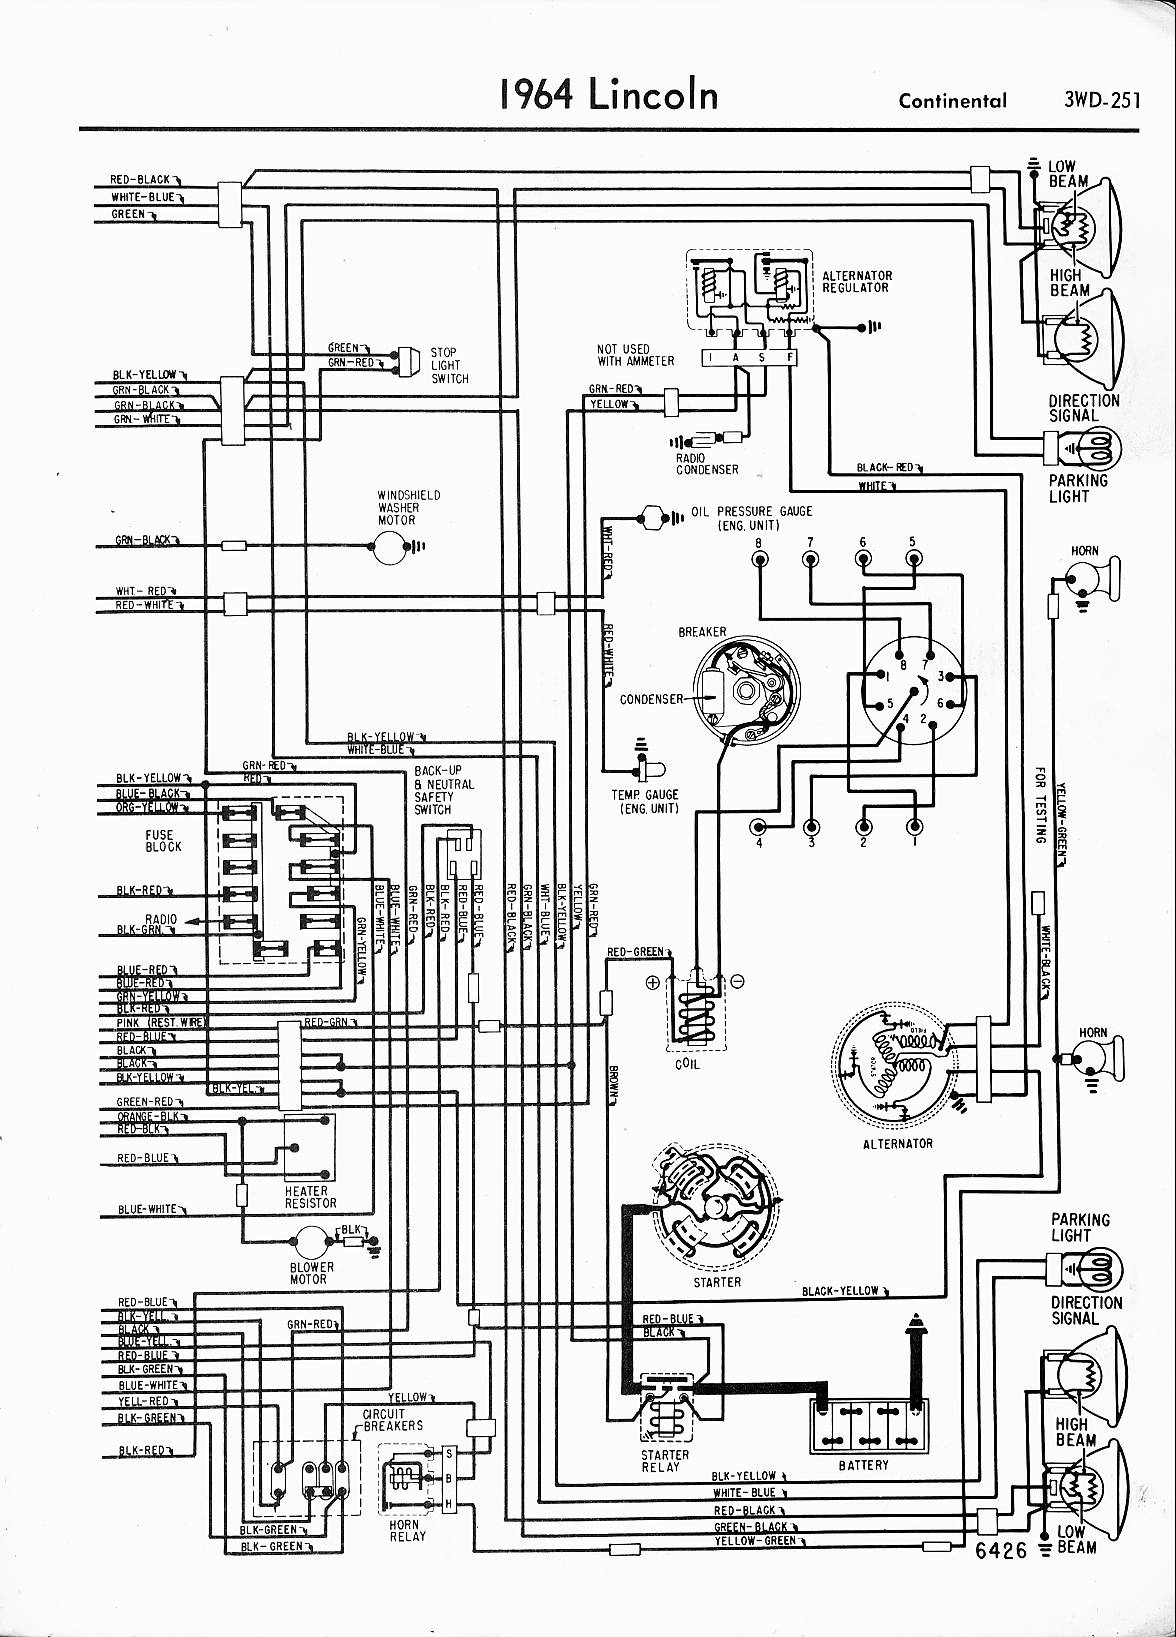 hight resolution of 1969 lincoln wiring diagram wiring diagram megalincoln continental wiring diagram wiring diagram val 1969 lincoln wiring